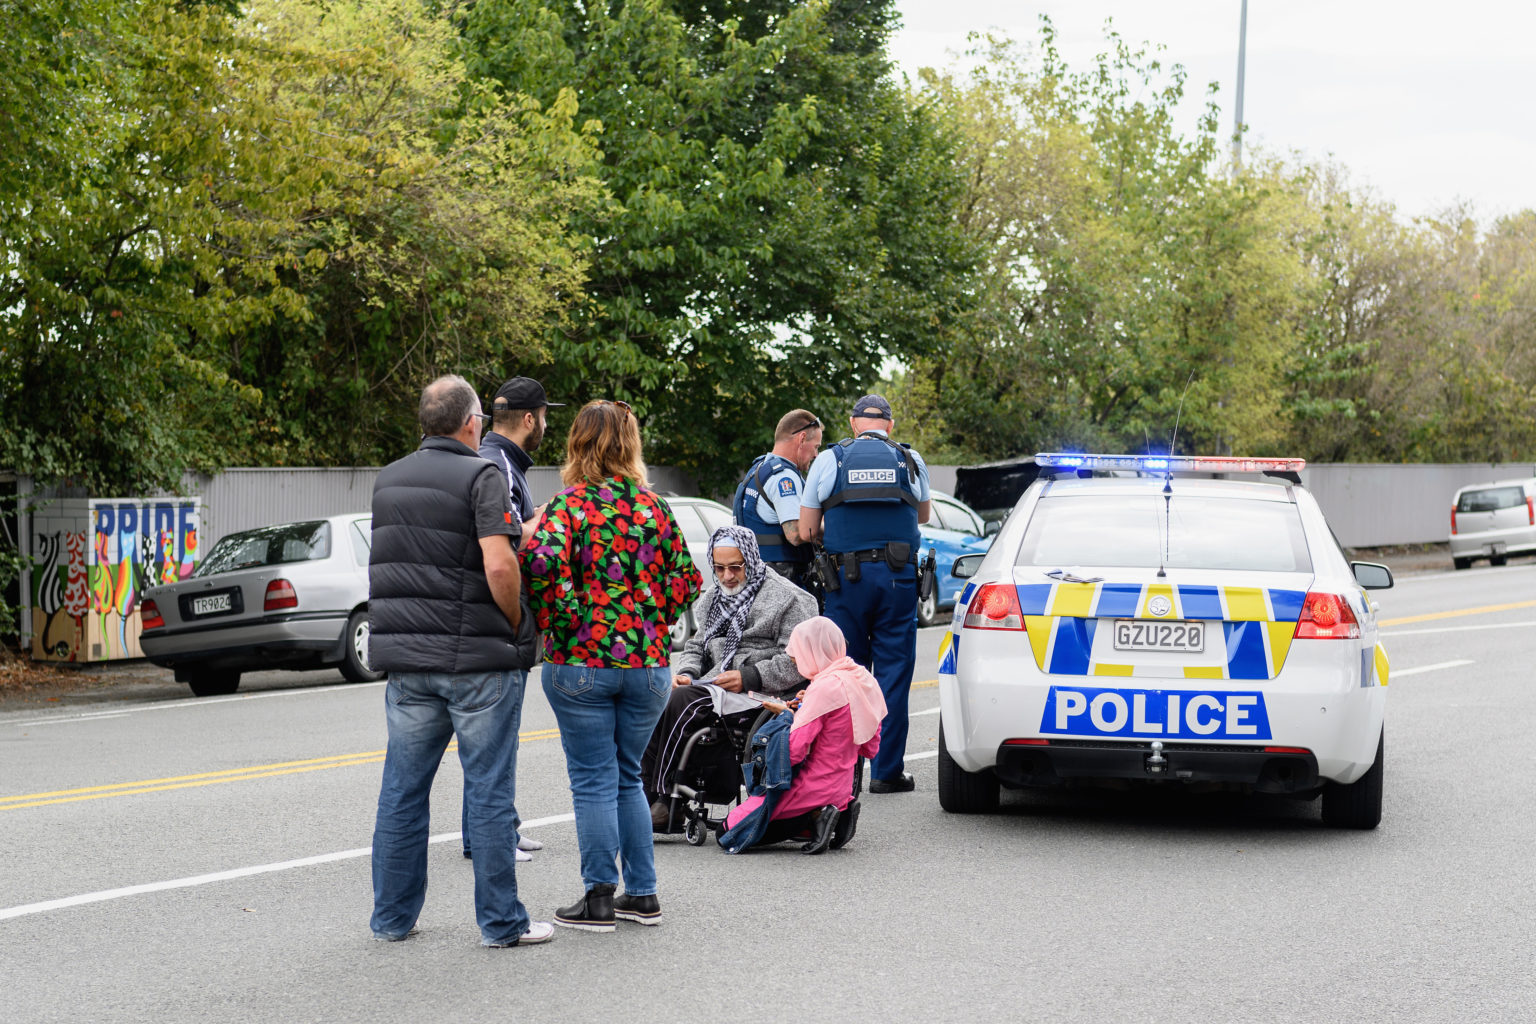 Members of the public react in front of the Masjd Al Noor Mosque as they fear for their relatives on March 15, 2019 in Christchurch, New Zealand. 49 people have been confirmed dead and more than 20 are injured following attacks at two mosques in Christchurch. Four people are in custody following shootings at Al Noor mosque on Dean's Road and the Linwood Masjid in Christchurch. Mosques across New Zealand have been closed and police are urging people not to attend Friday prayers as a safety precaution. (Kai Schwoerer/Getty Images/TNS)